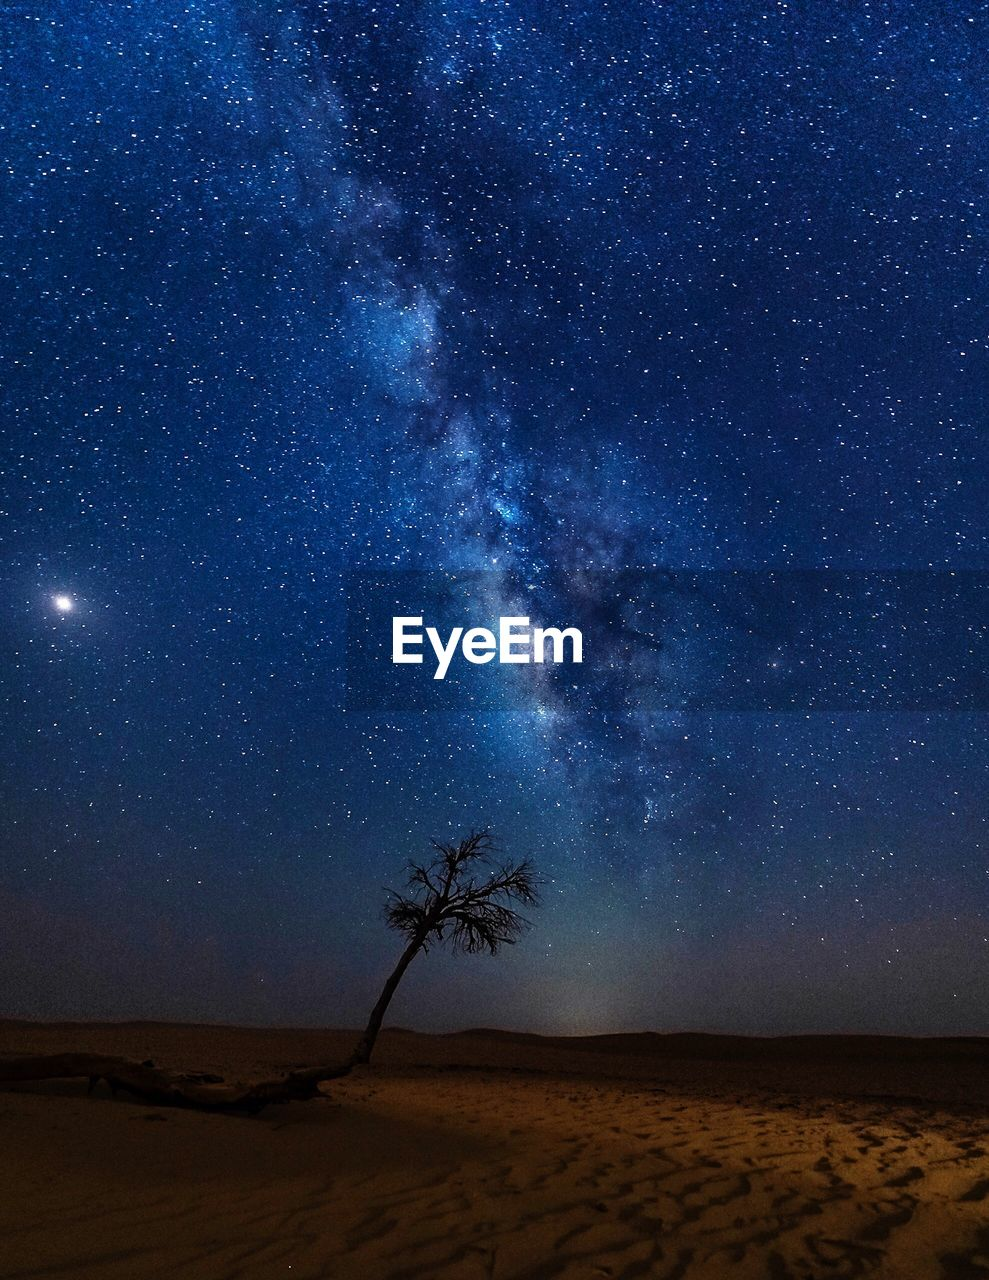 sky, scenics - nature, land, tranquil scene, tranquility, star - space, tree, beauty in nature, nature, plant, sand, night, galaxy, desert, space, no people, landscape, astronomy, environment, palm tree, arid climate, outdoors, milky way, climate